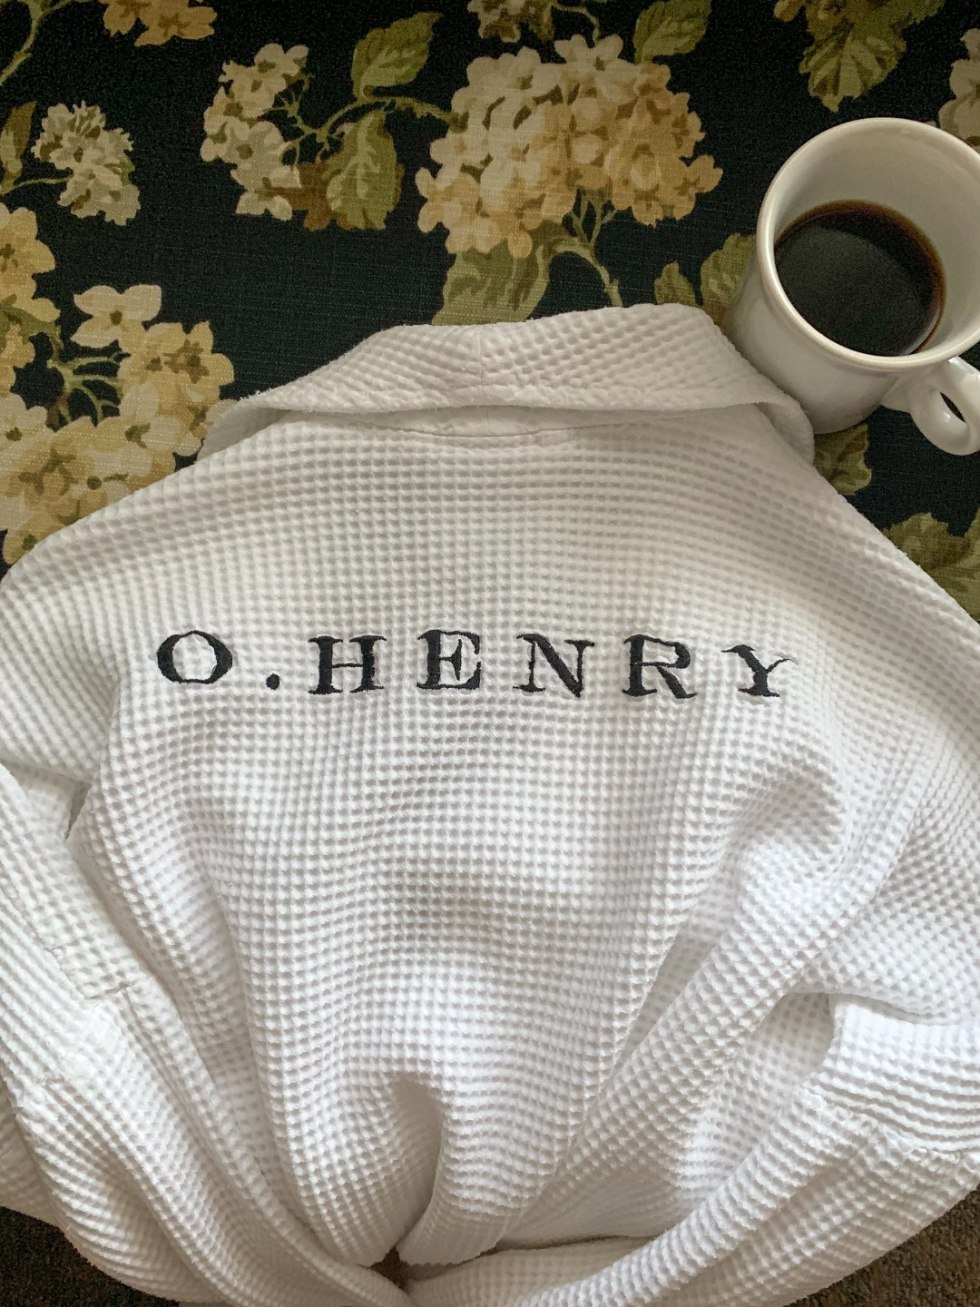 A Night at the O.Henry Hotel In Greensboro, NC - I'm Fixin' To - @mbg0112 | A Night at the O.Henry Hotel In Greensboro, NC by popular North Carolina blog, I'm fixin' To: image of the back of a white embroidered O. Henry Hotel hotel with a mug of coffee next to it.